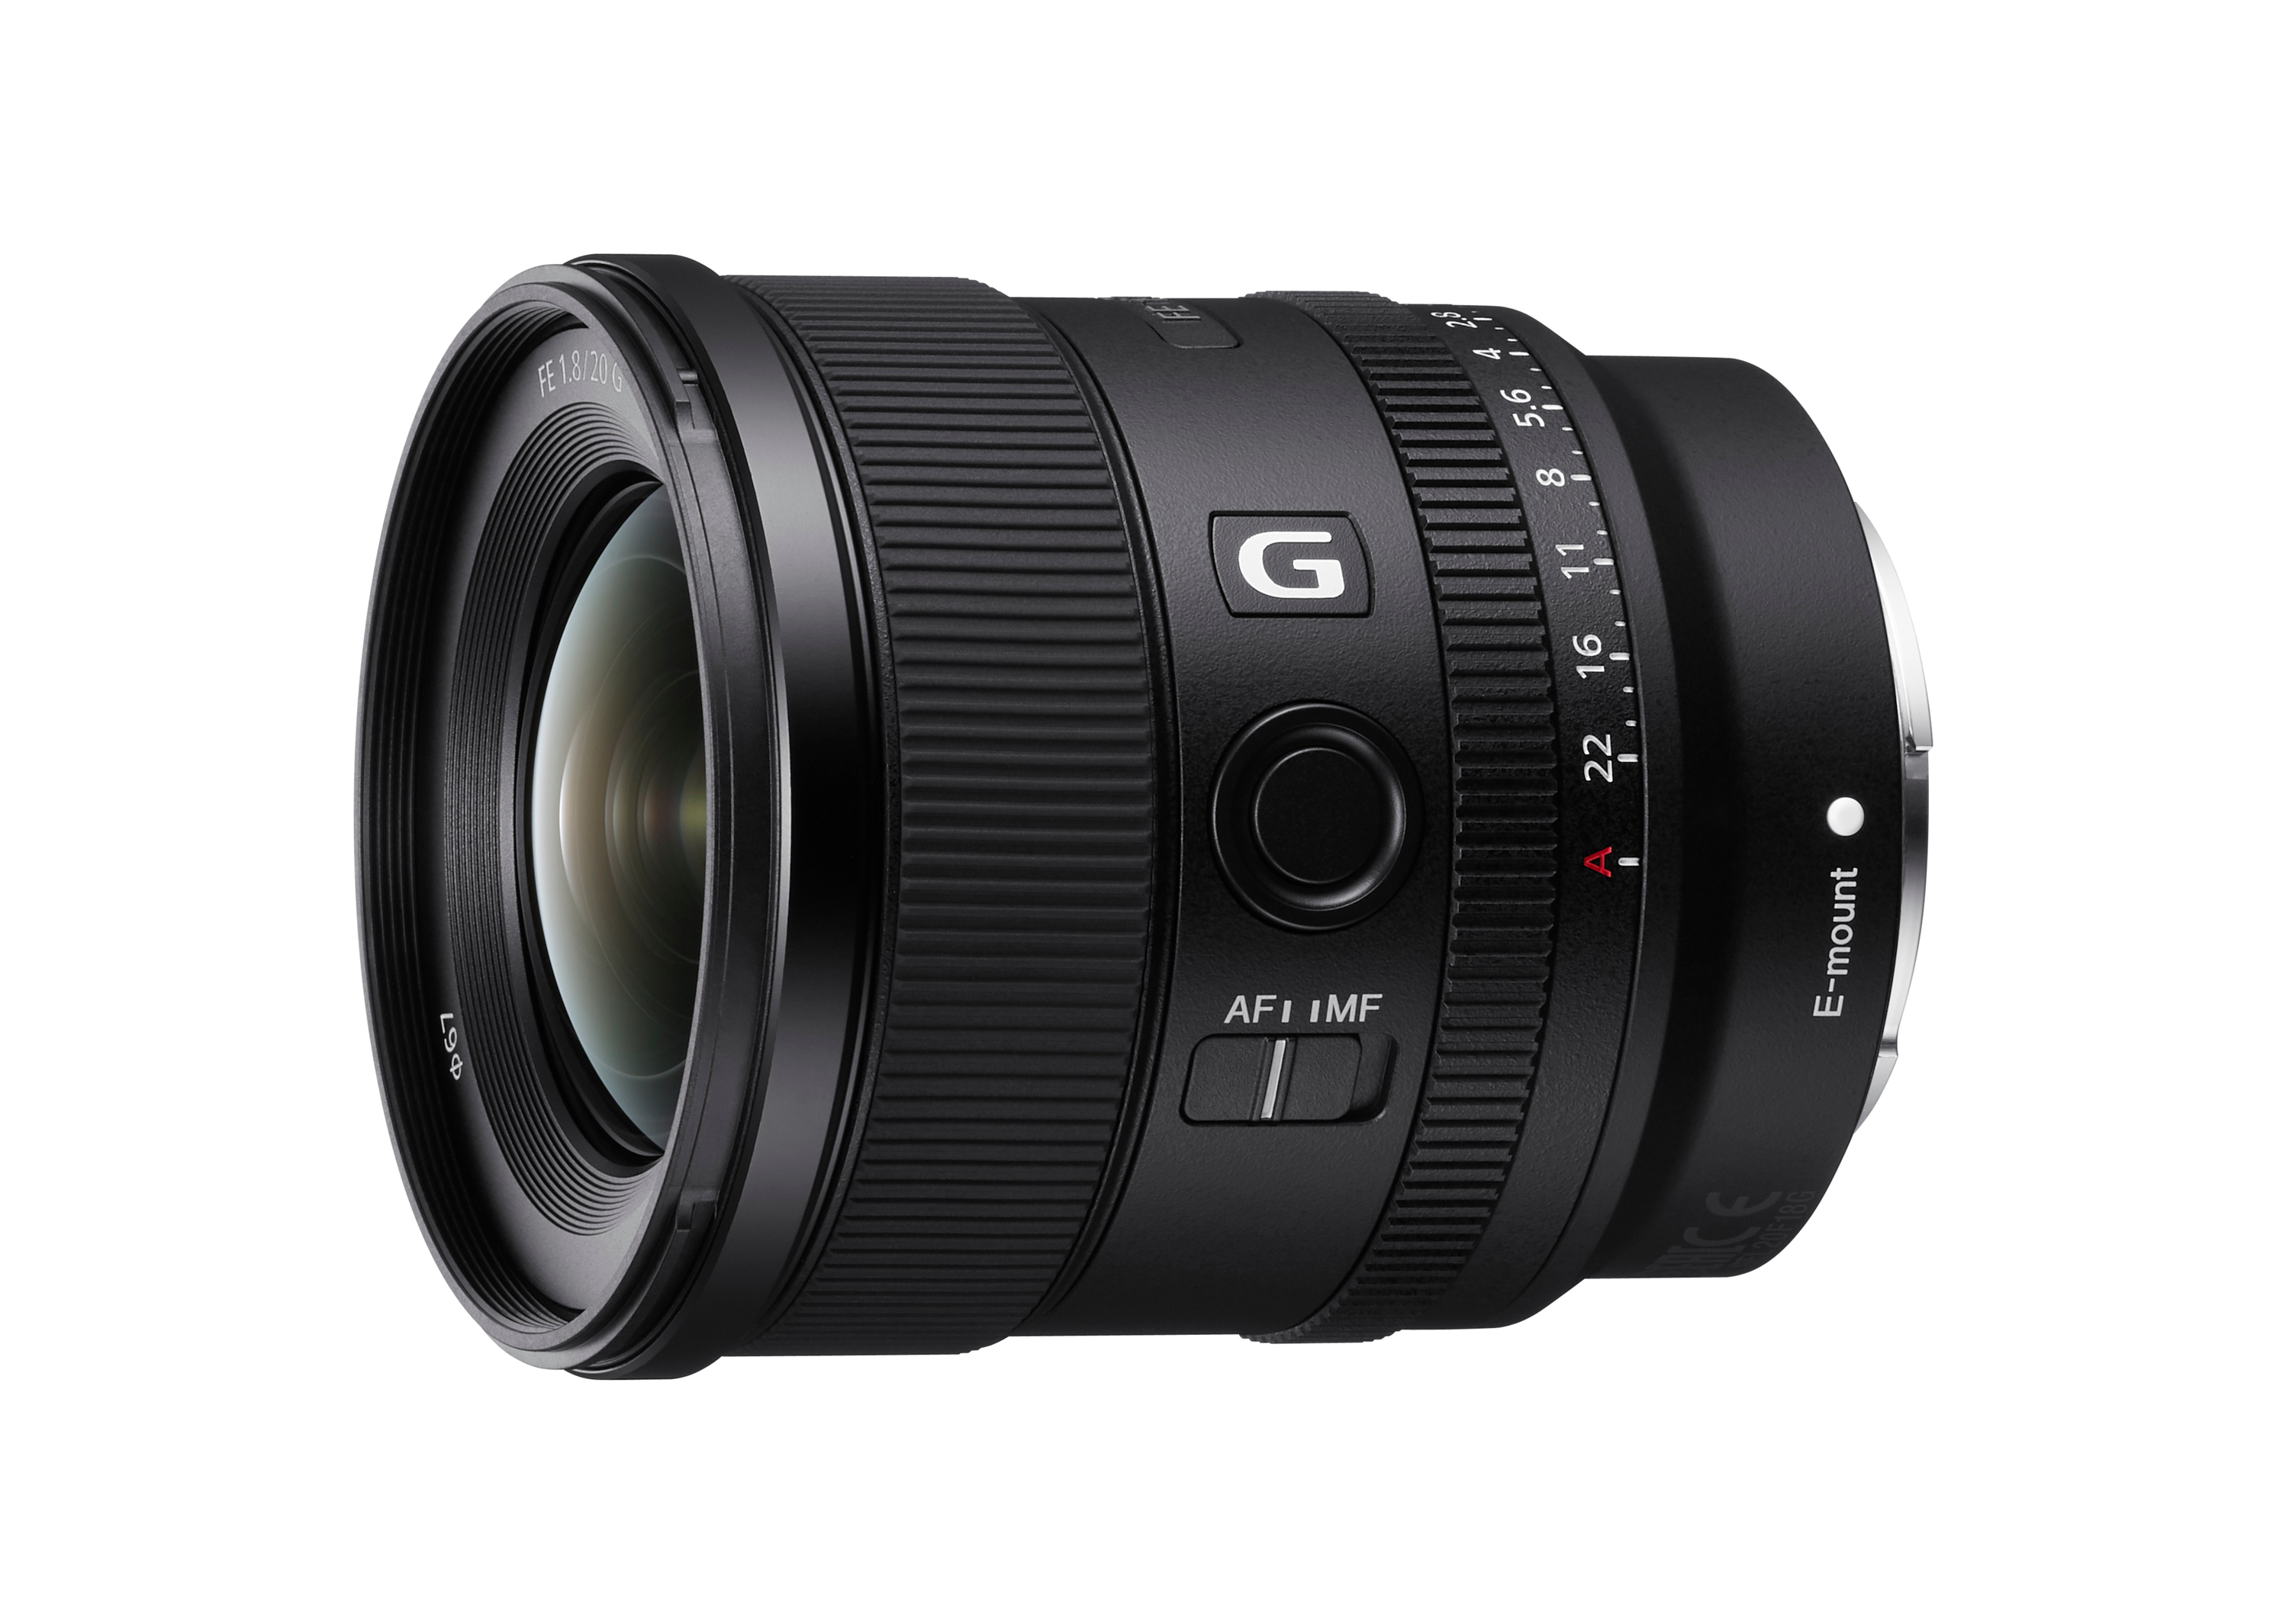 Sony Boosts Full-Frame Lens Line-up with Introduction of New FE 20mm F1.8 G Large-aperture Ultra-wide-angle Prime Lens